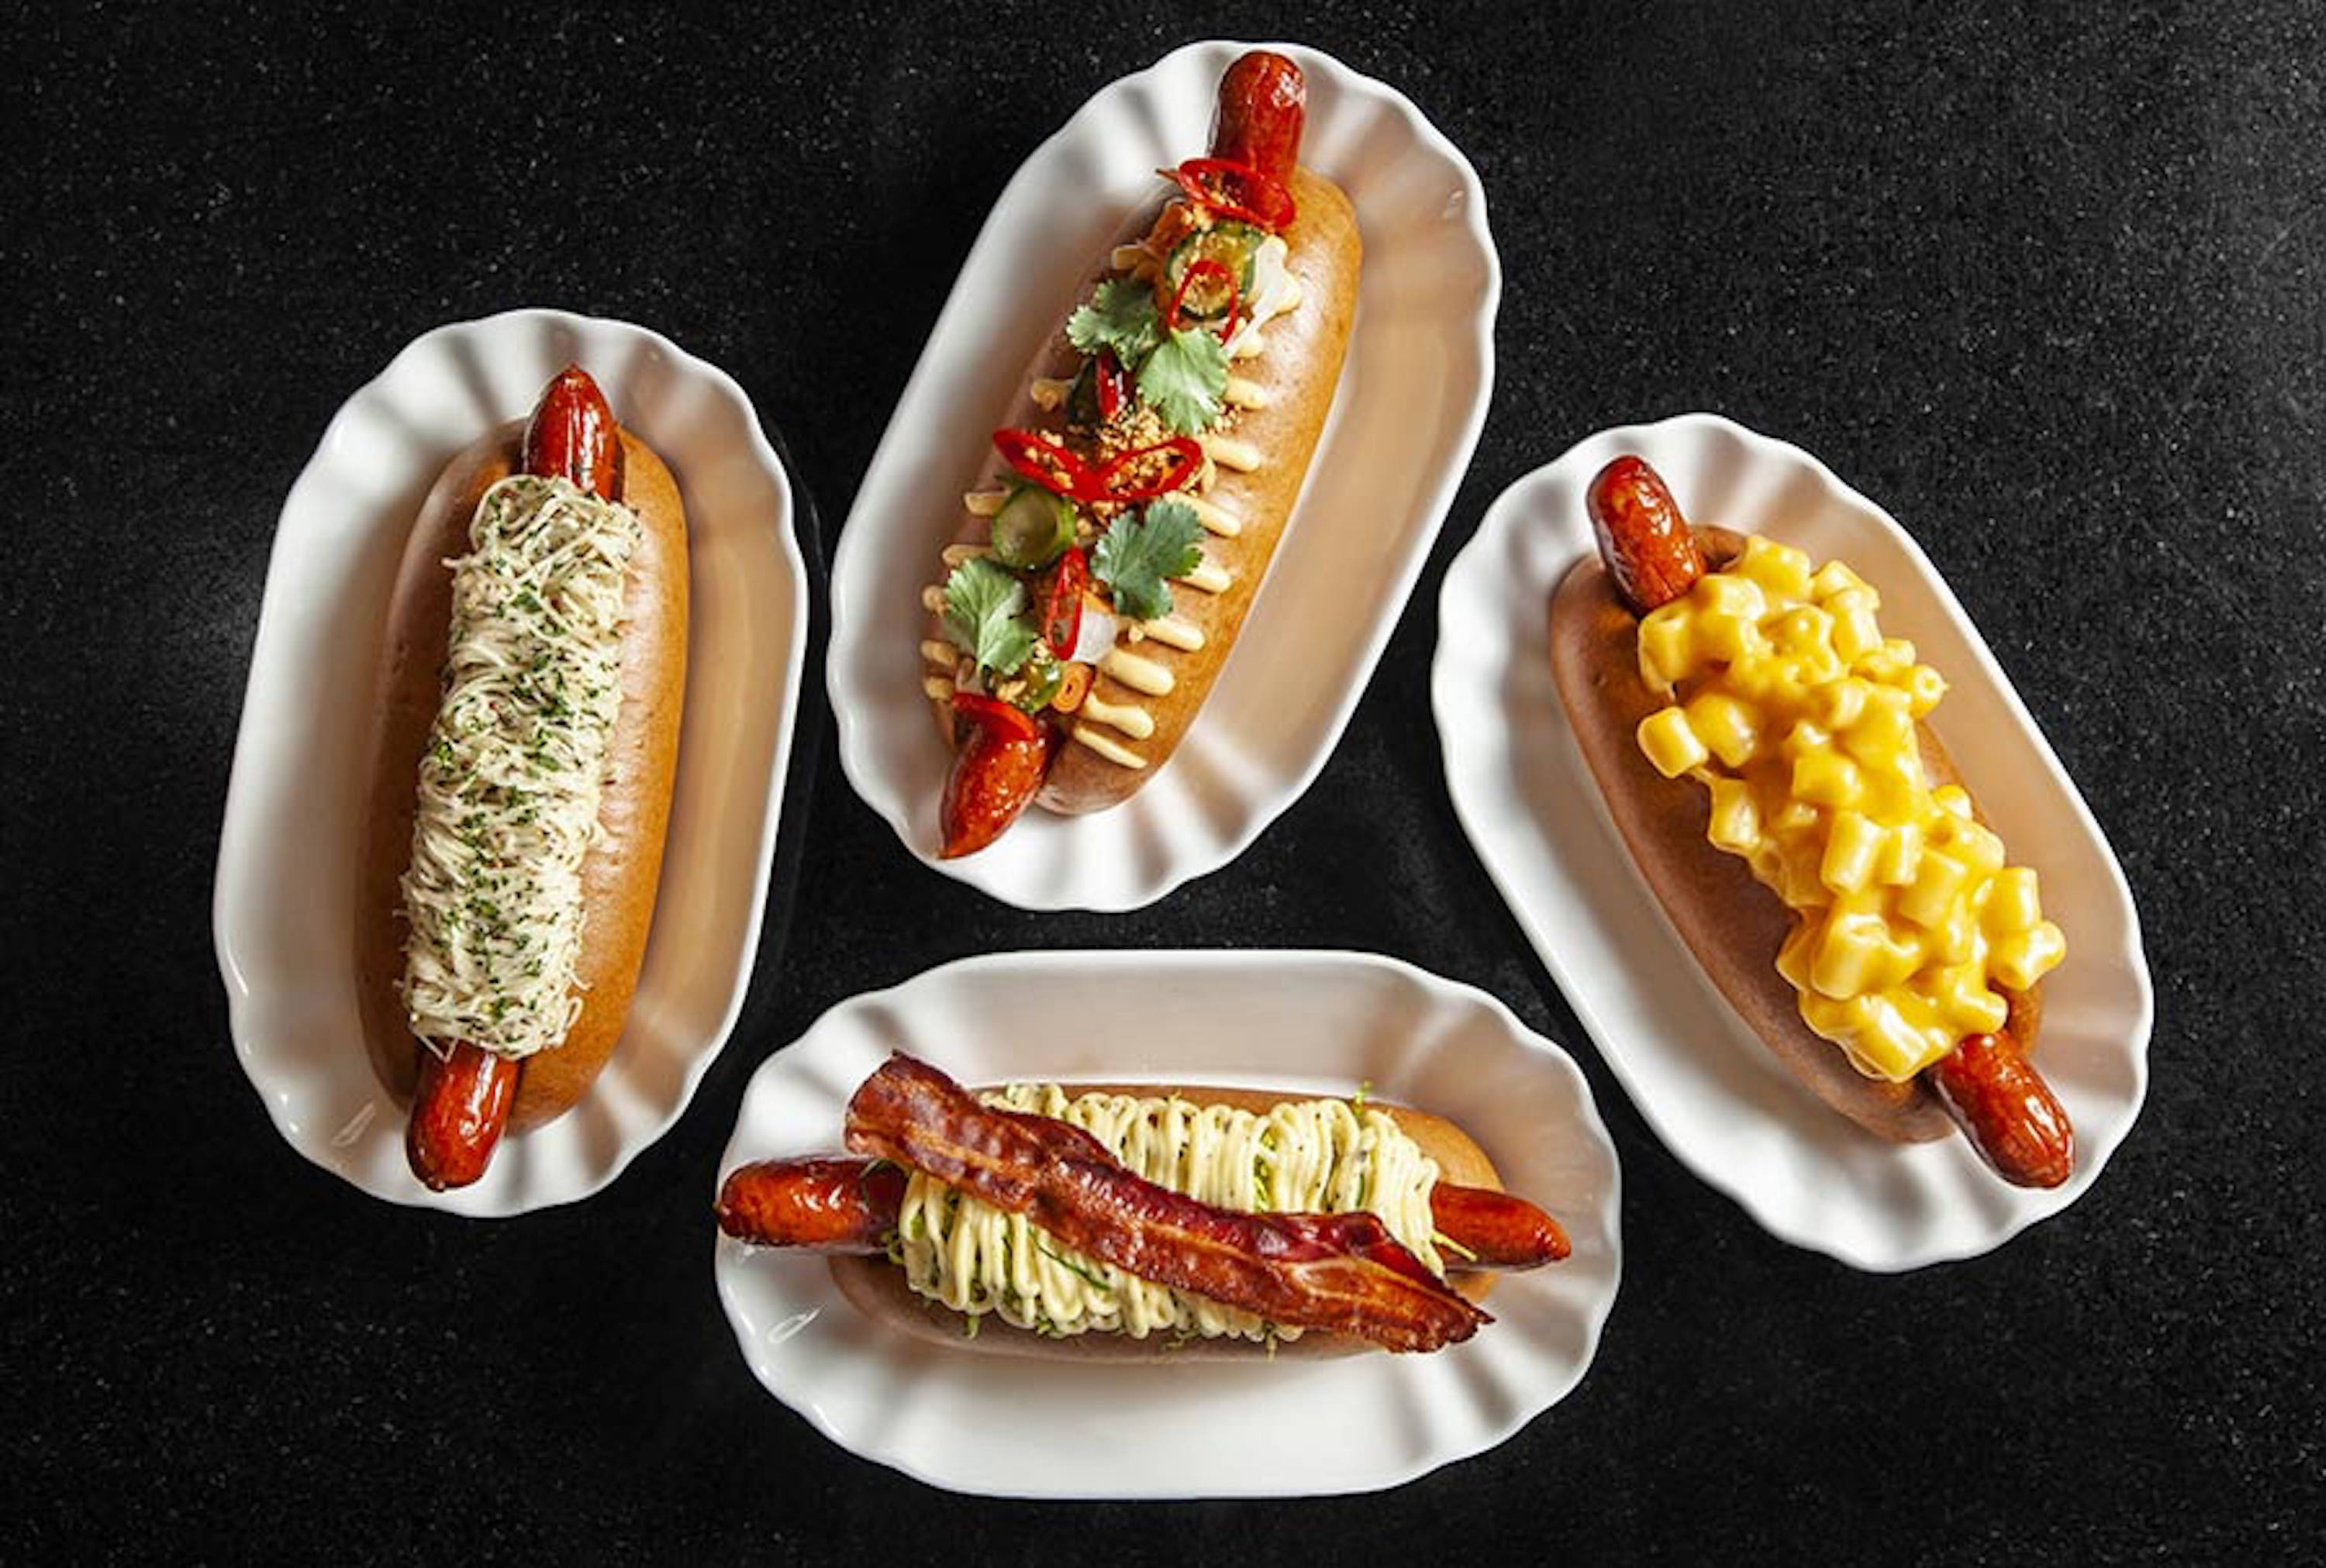 Bubbledogs hot dog and champagne restaurant in London will develop a new menu, at the front of Michelin-starred restaurant Kitchen Table